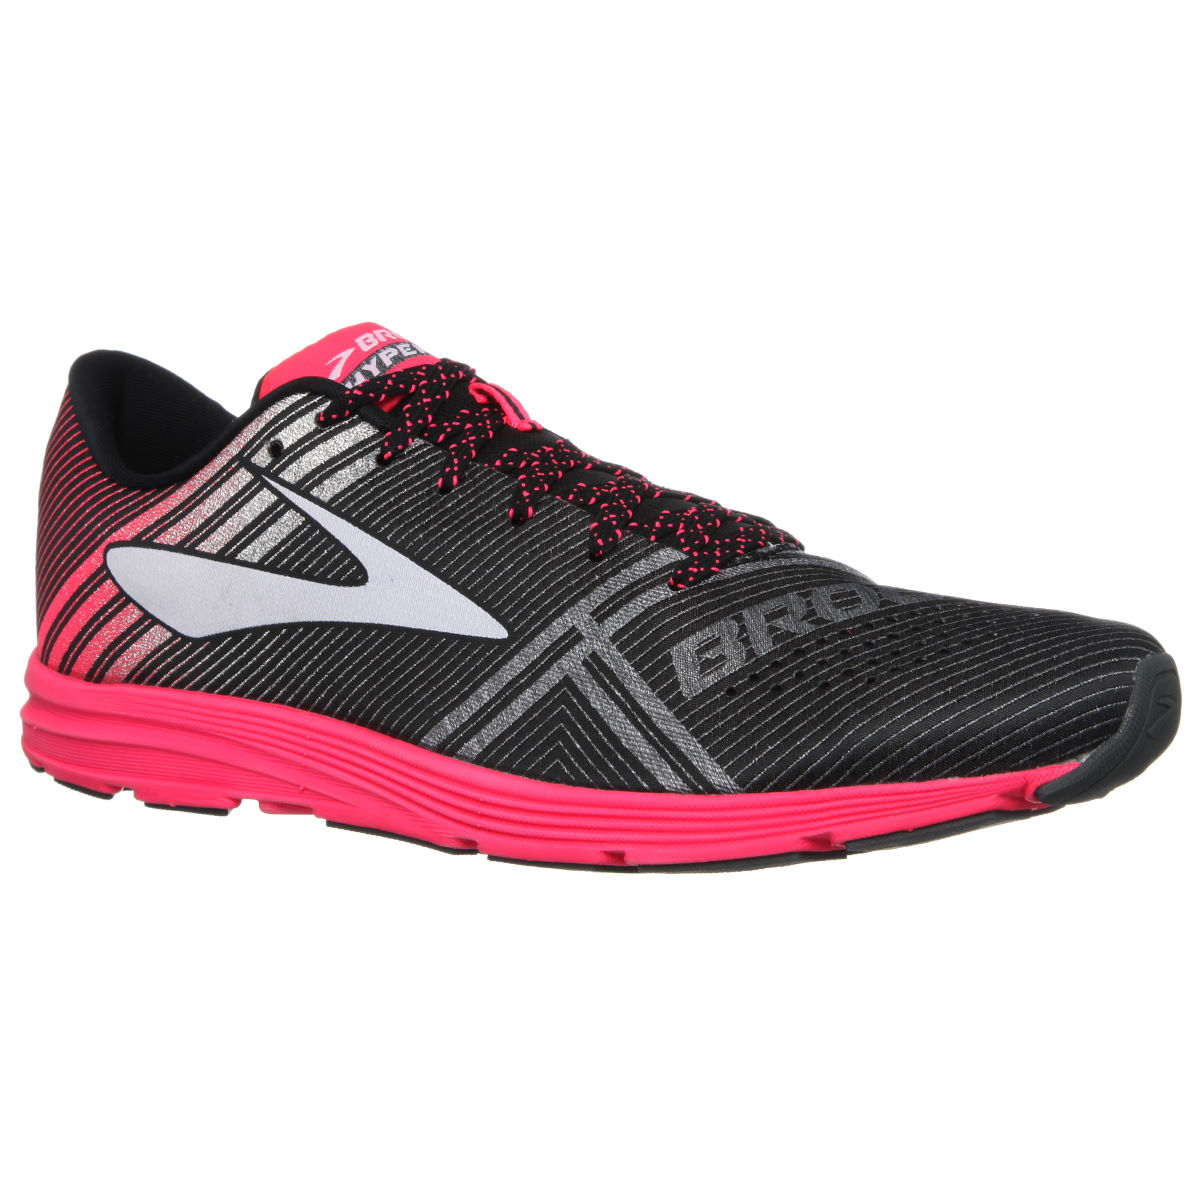 Brooks Women's Hyperion Shoes - Zapatillas acolchadas